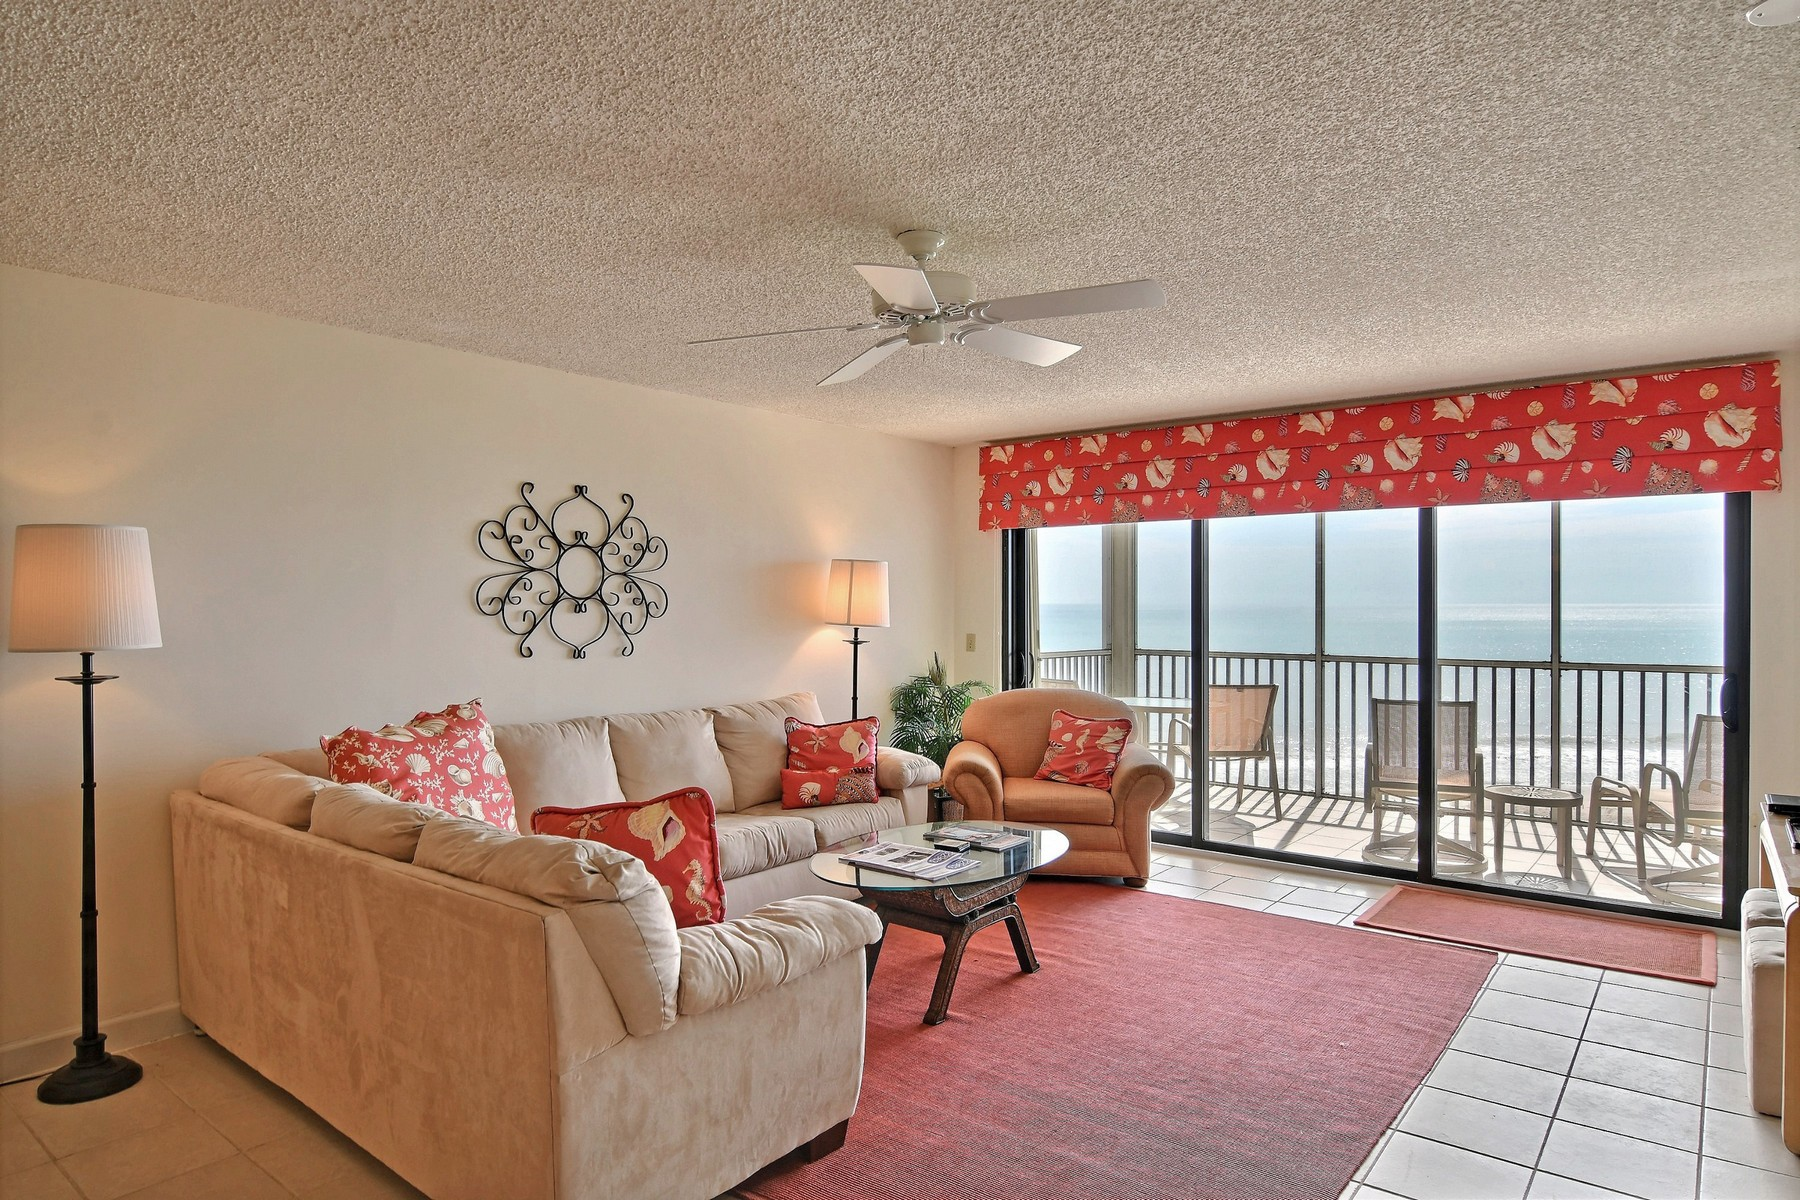 Sea Oaks Oceanfront Condo 8840 S Sea Oaks Way #206 Vero Beach, Florida 32963 Estados Unidos